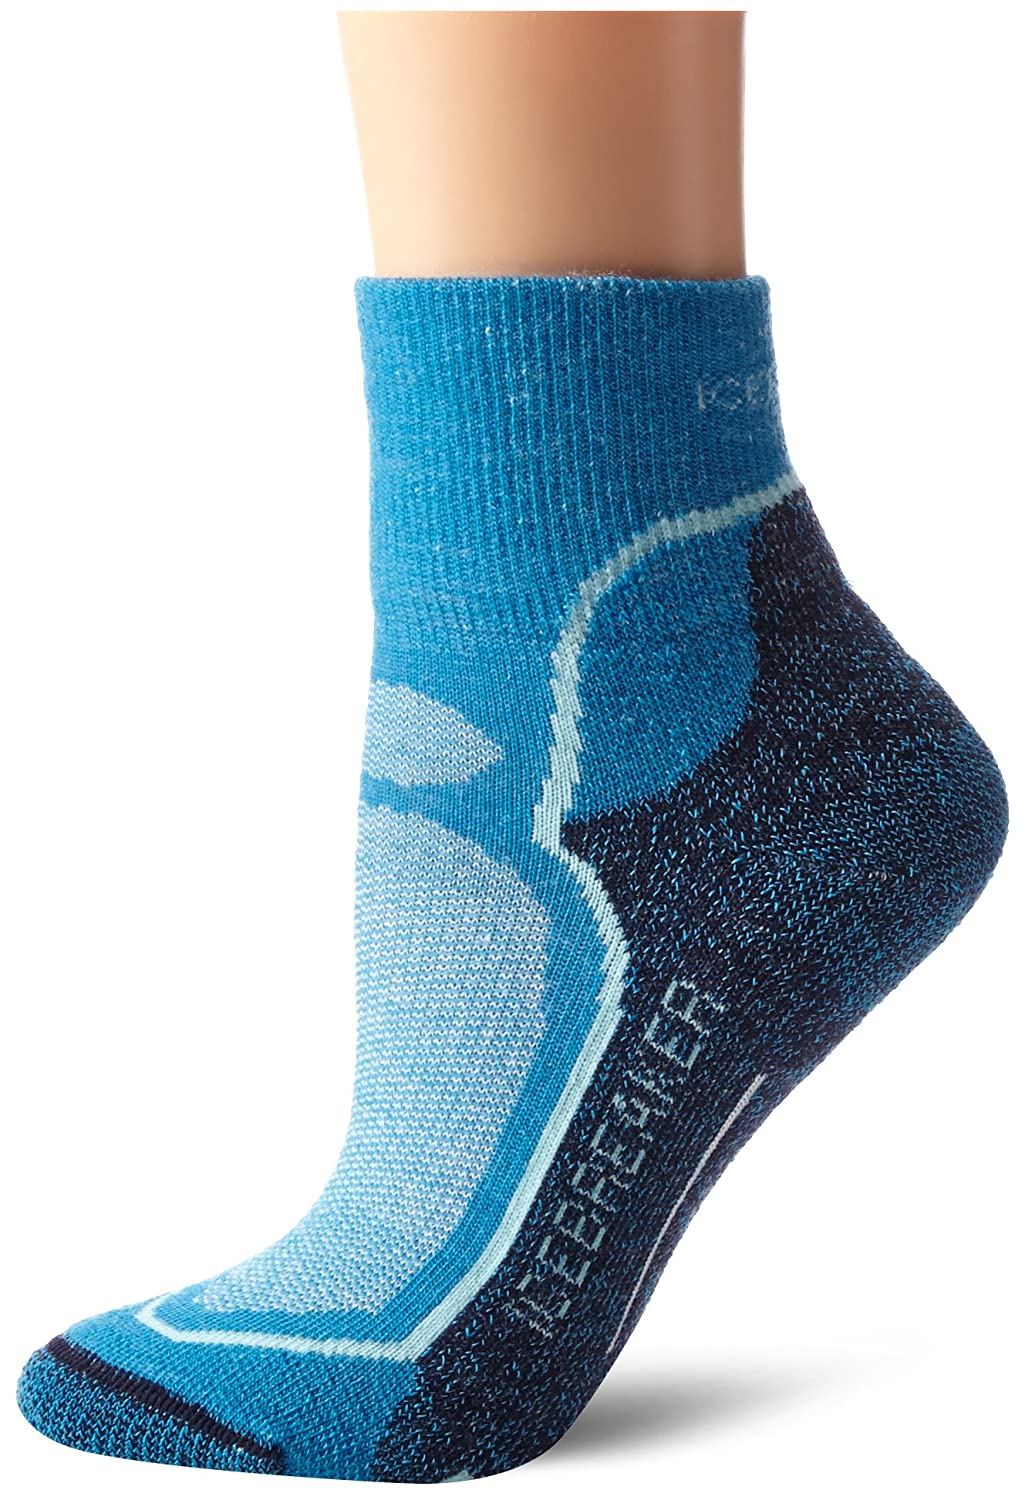 Icebreaker Women's Hike Pus ite Mini Socks, Cruise/Teardrop/Admira, arge